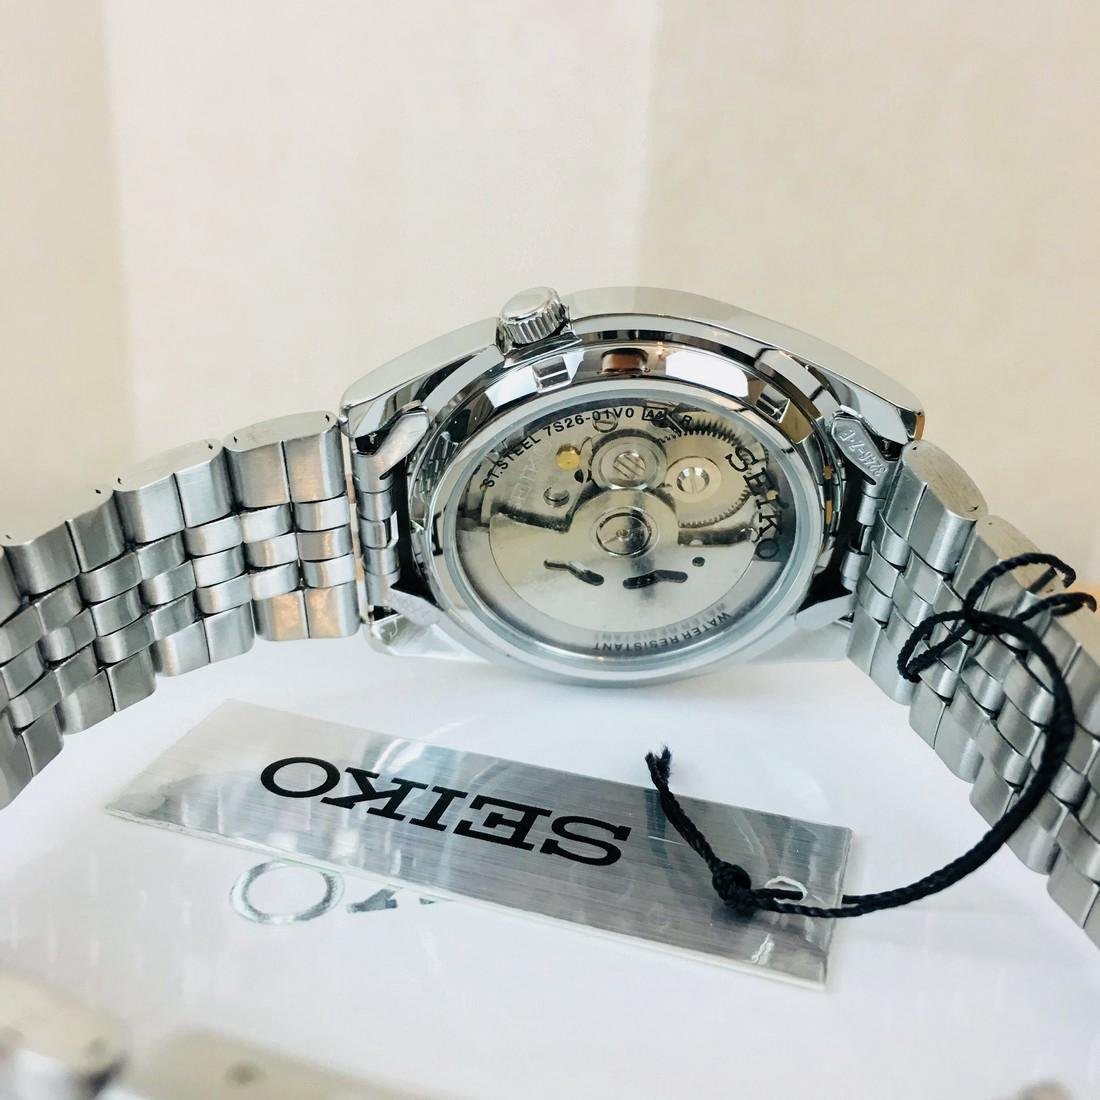 SEIKO 5 Men's Automatic Watch Brand New with Box - 5